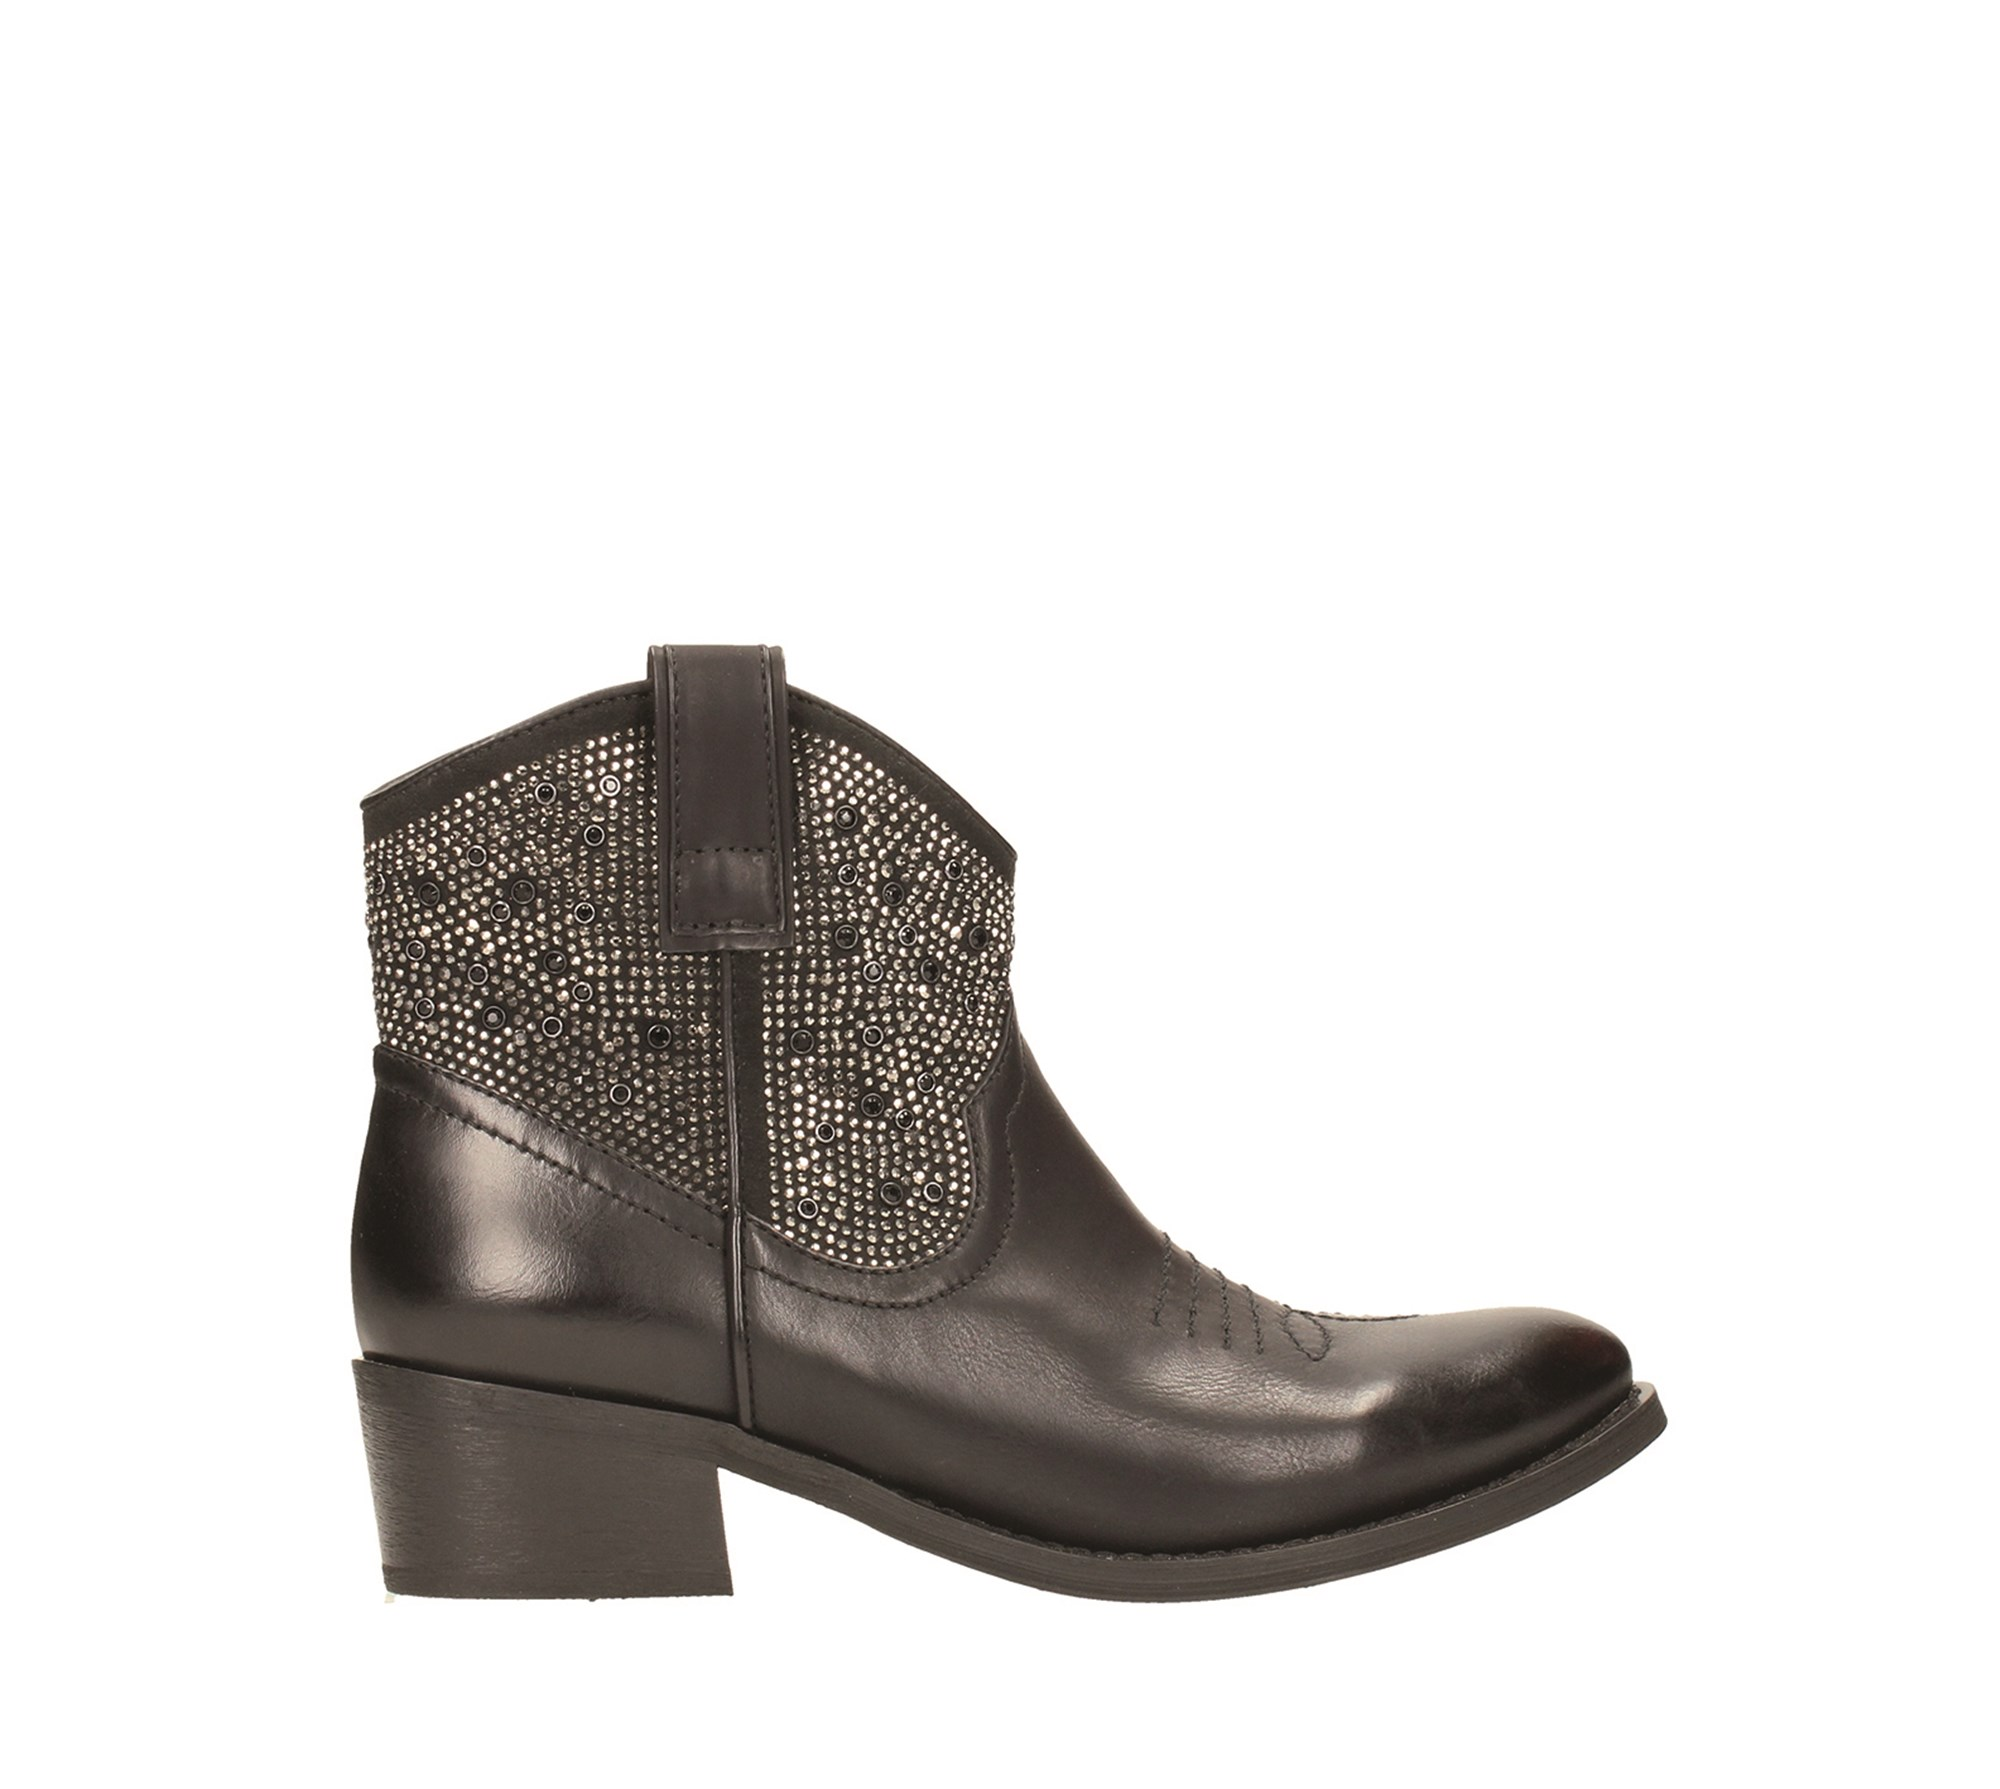 Tata Italia Shoes Woman 897-177